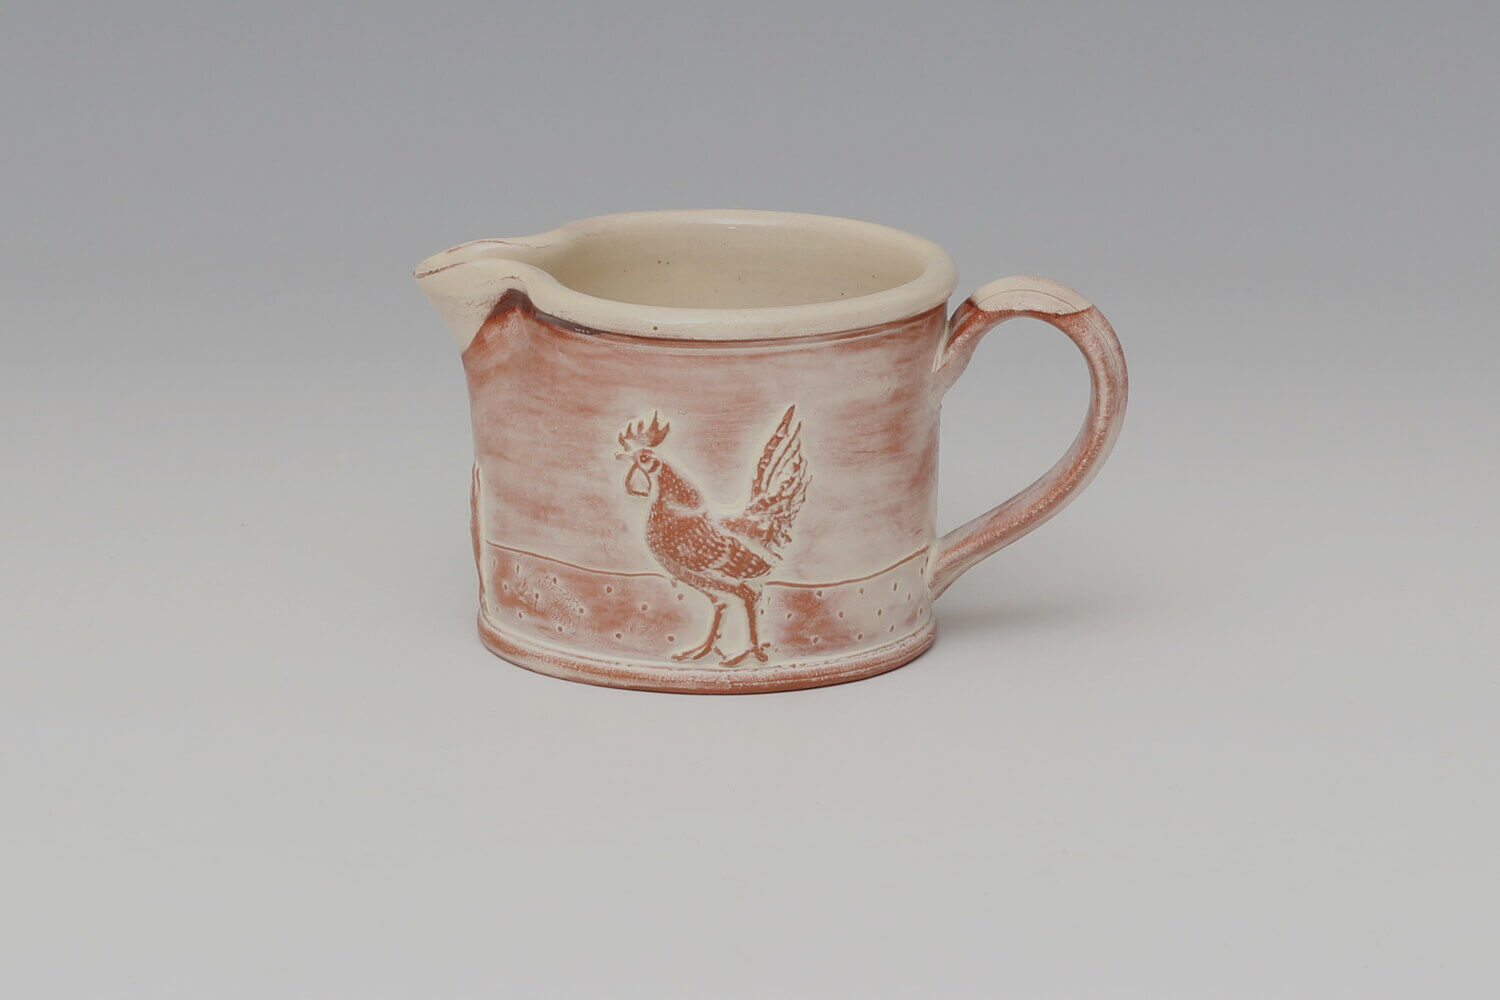 Philip Wood Small Ceramic Jug 03